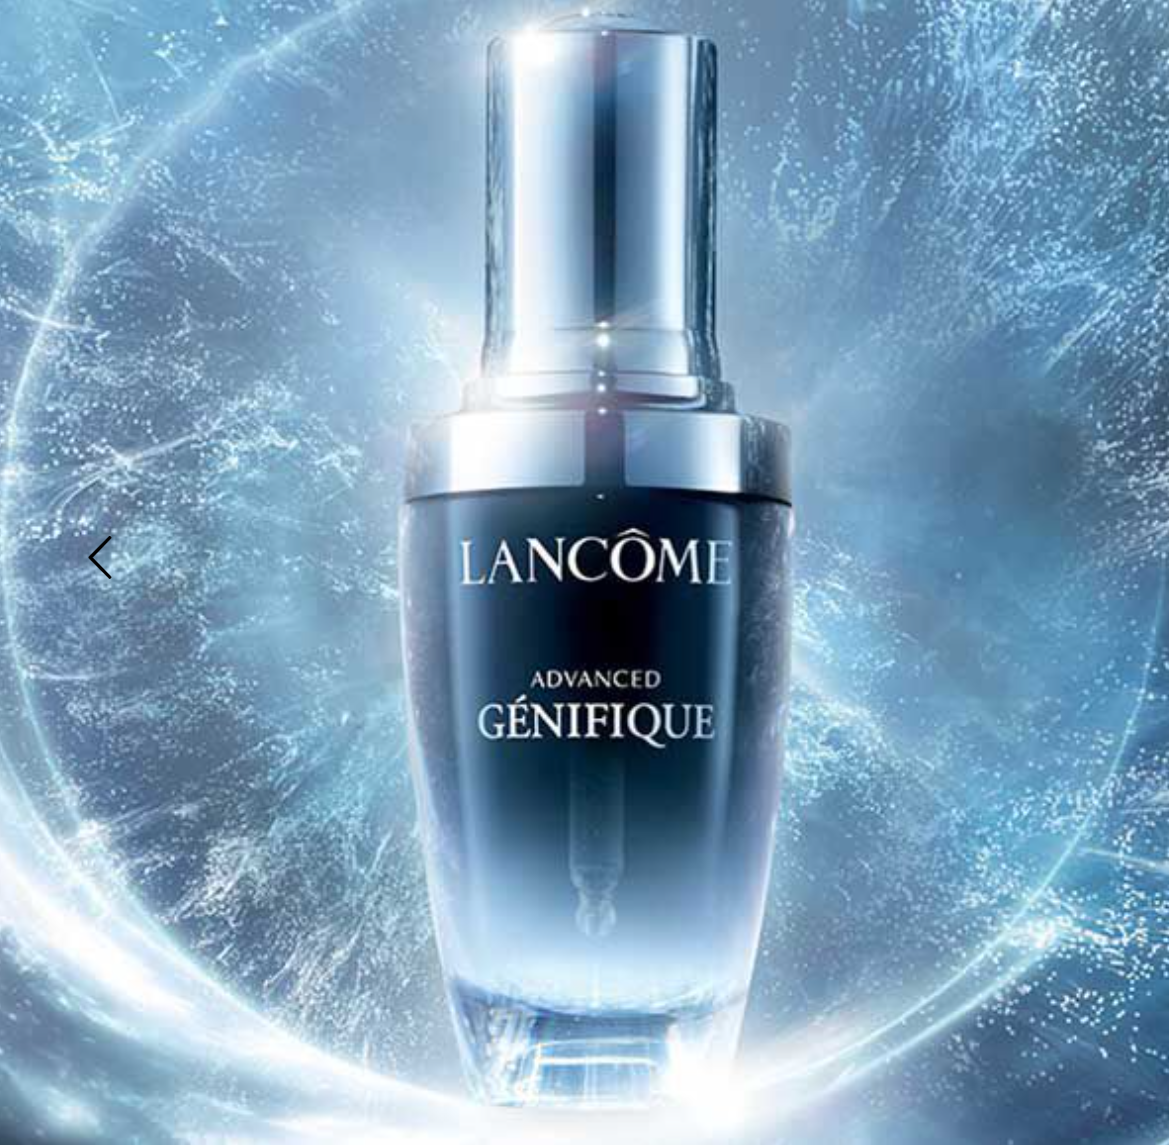 Lancome Canada 15% off almost Sitewide